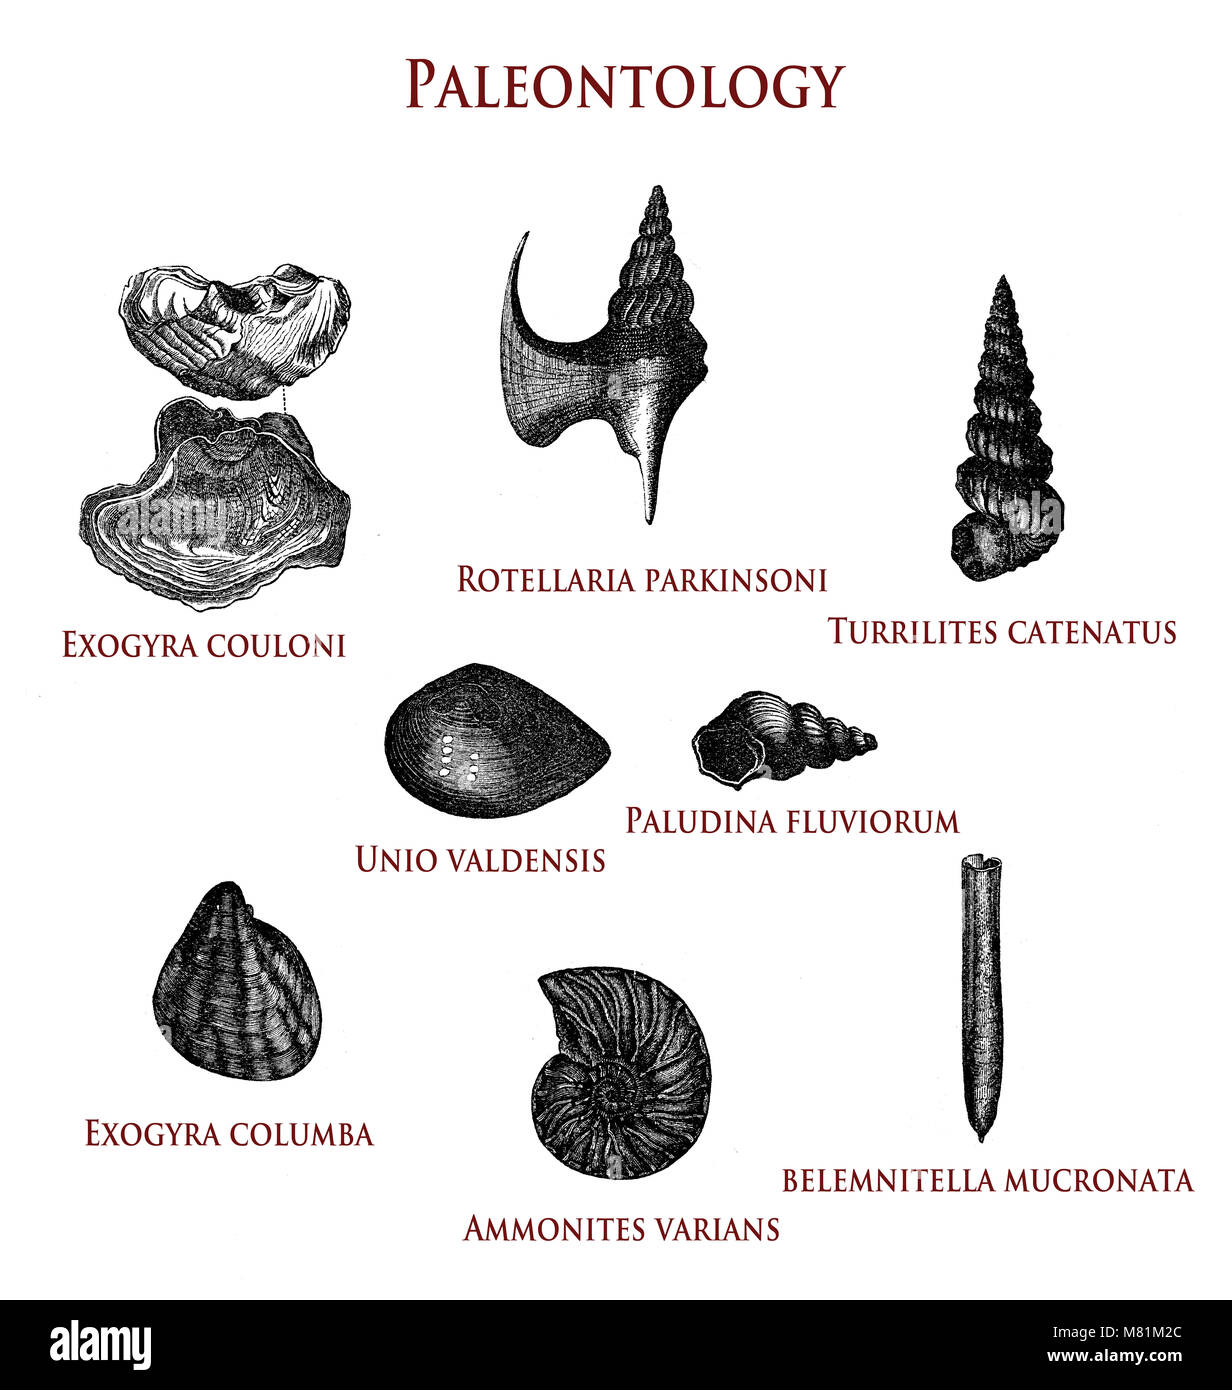 vintage paleontology  illustration of fossilized shells: exogyra couloni and columba, rotellaria parkinsoni,turrilites - Stock Image